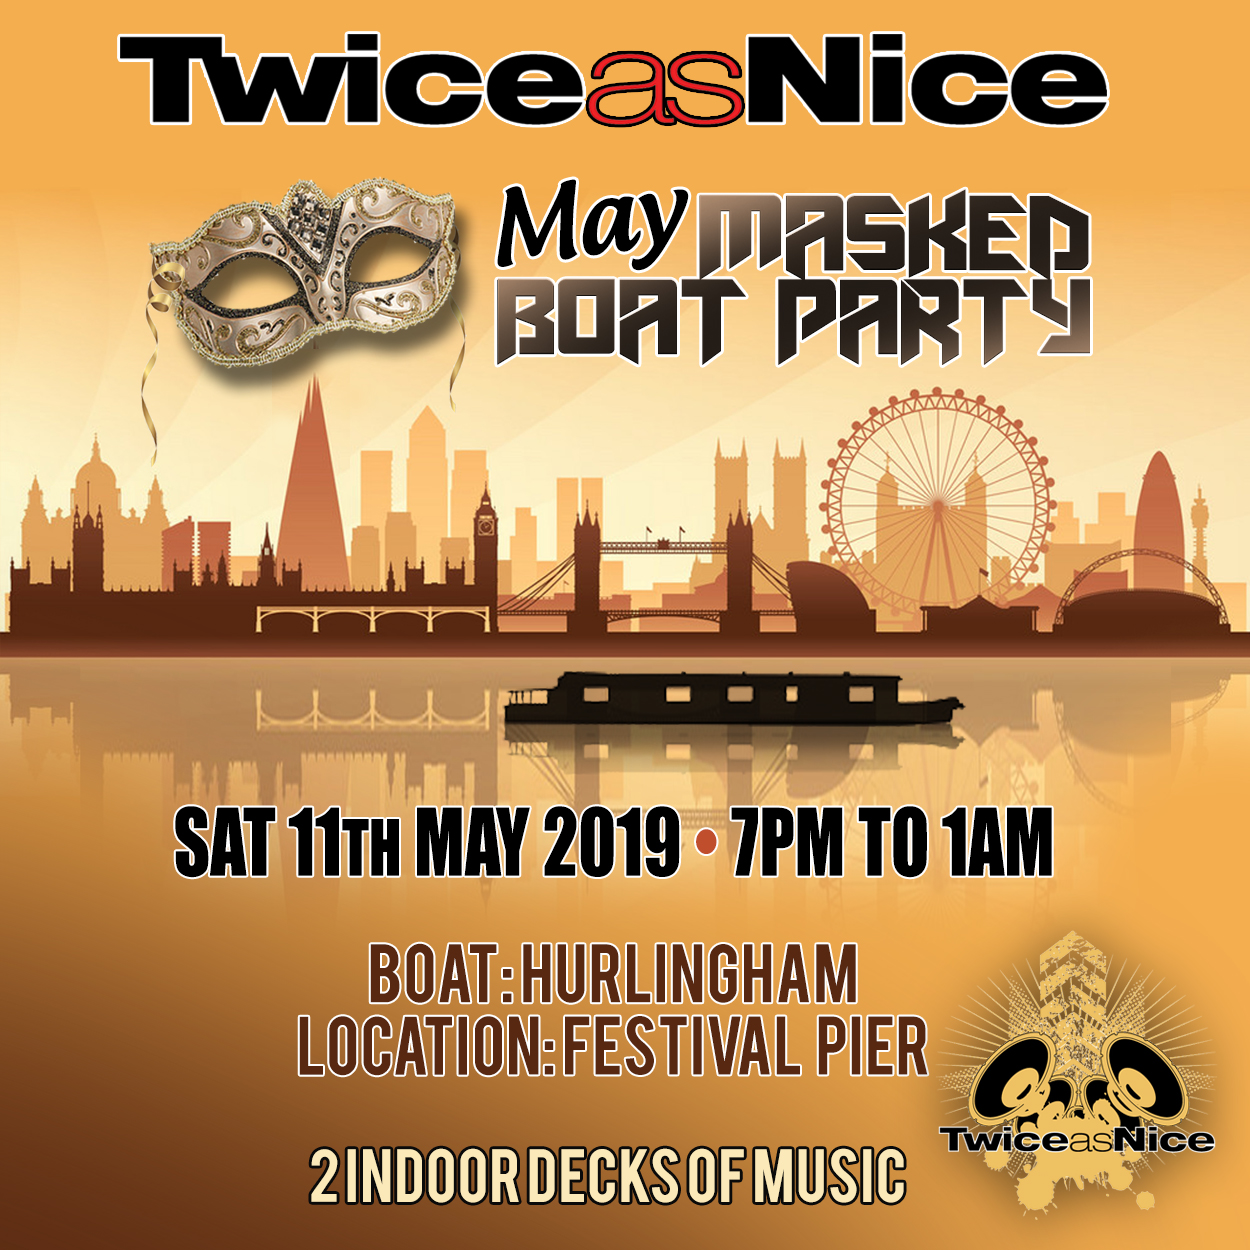 TwiceasNice May Masked Boat Party Saturday 11th May 2019